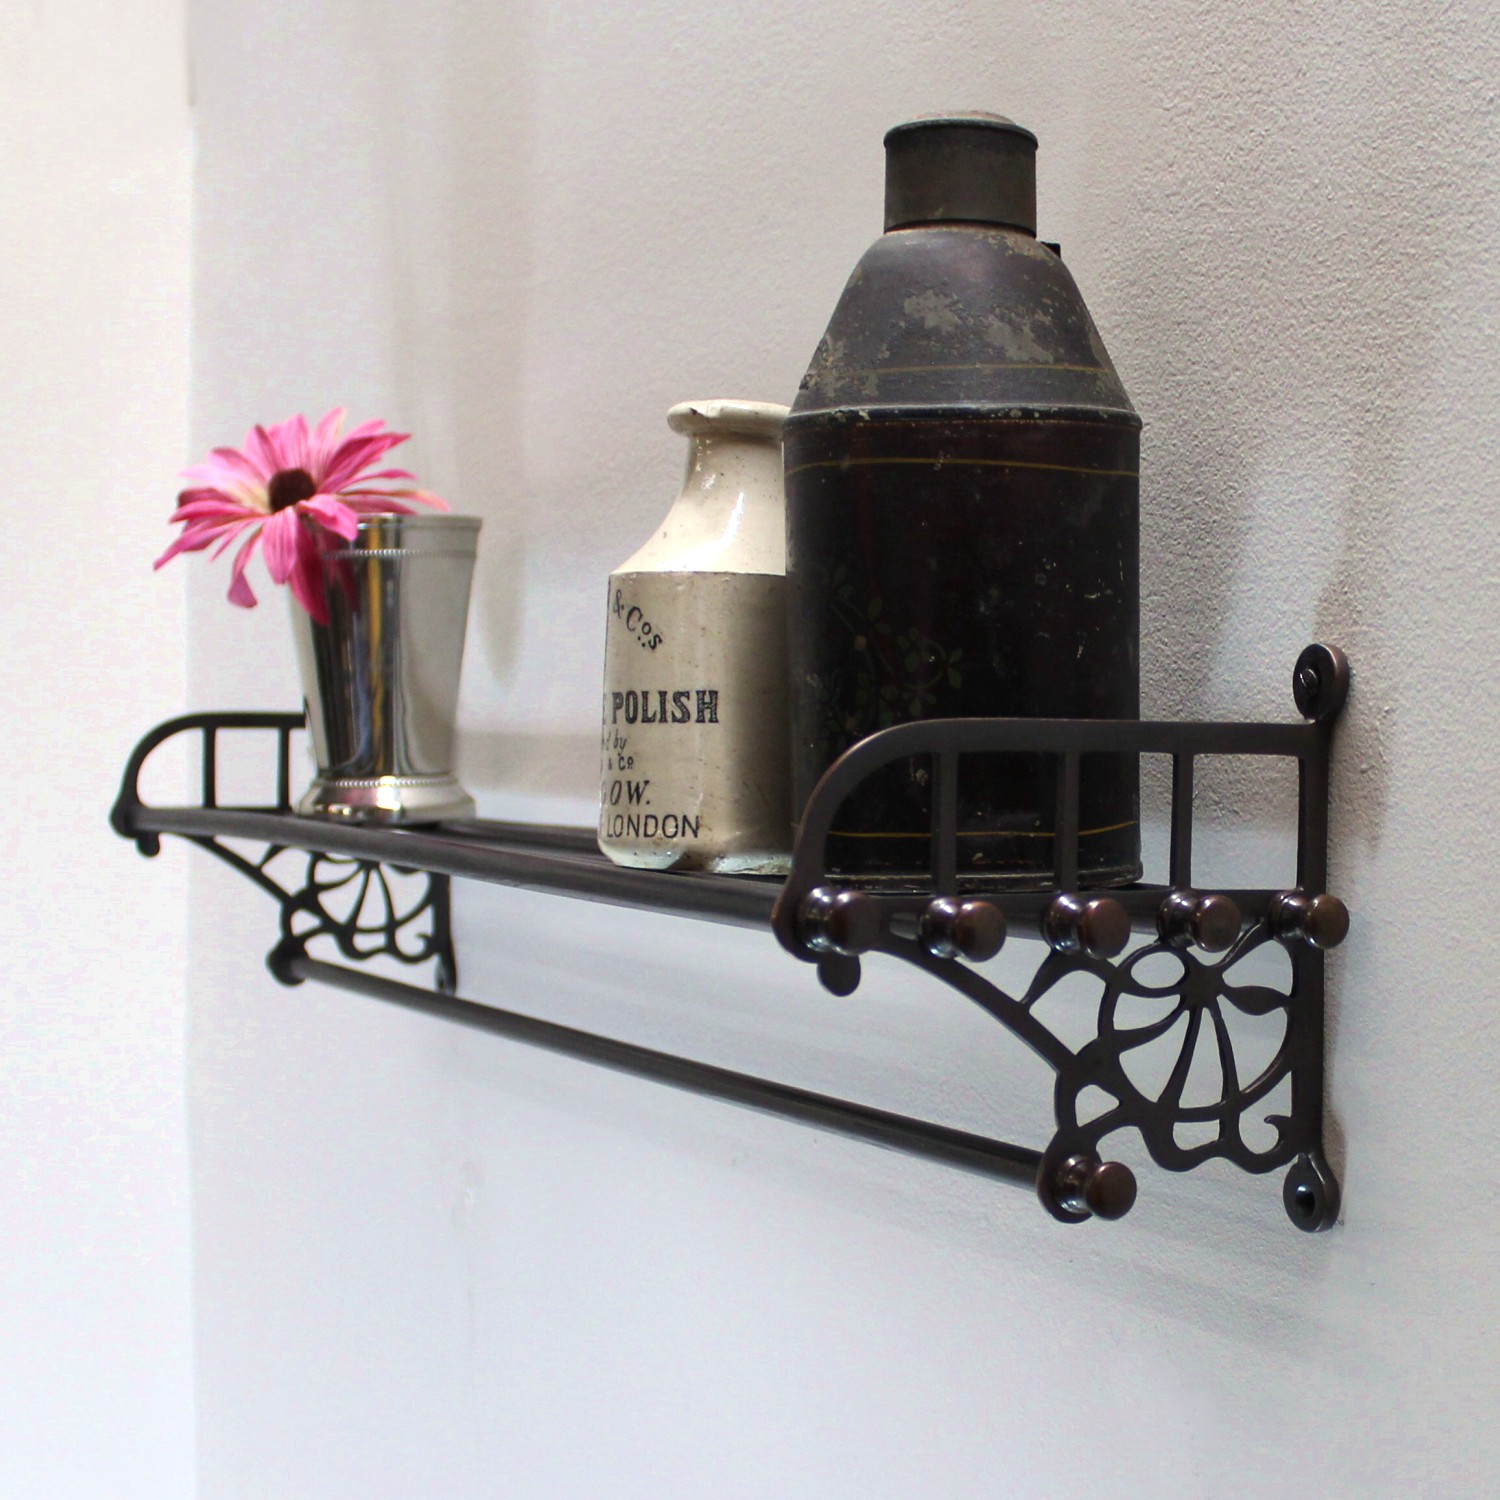 Reproduction Vintage Bath Towels: Bronze Train Rack For Bathroom With Shelf And Towel Rail